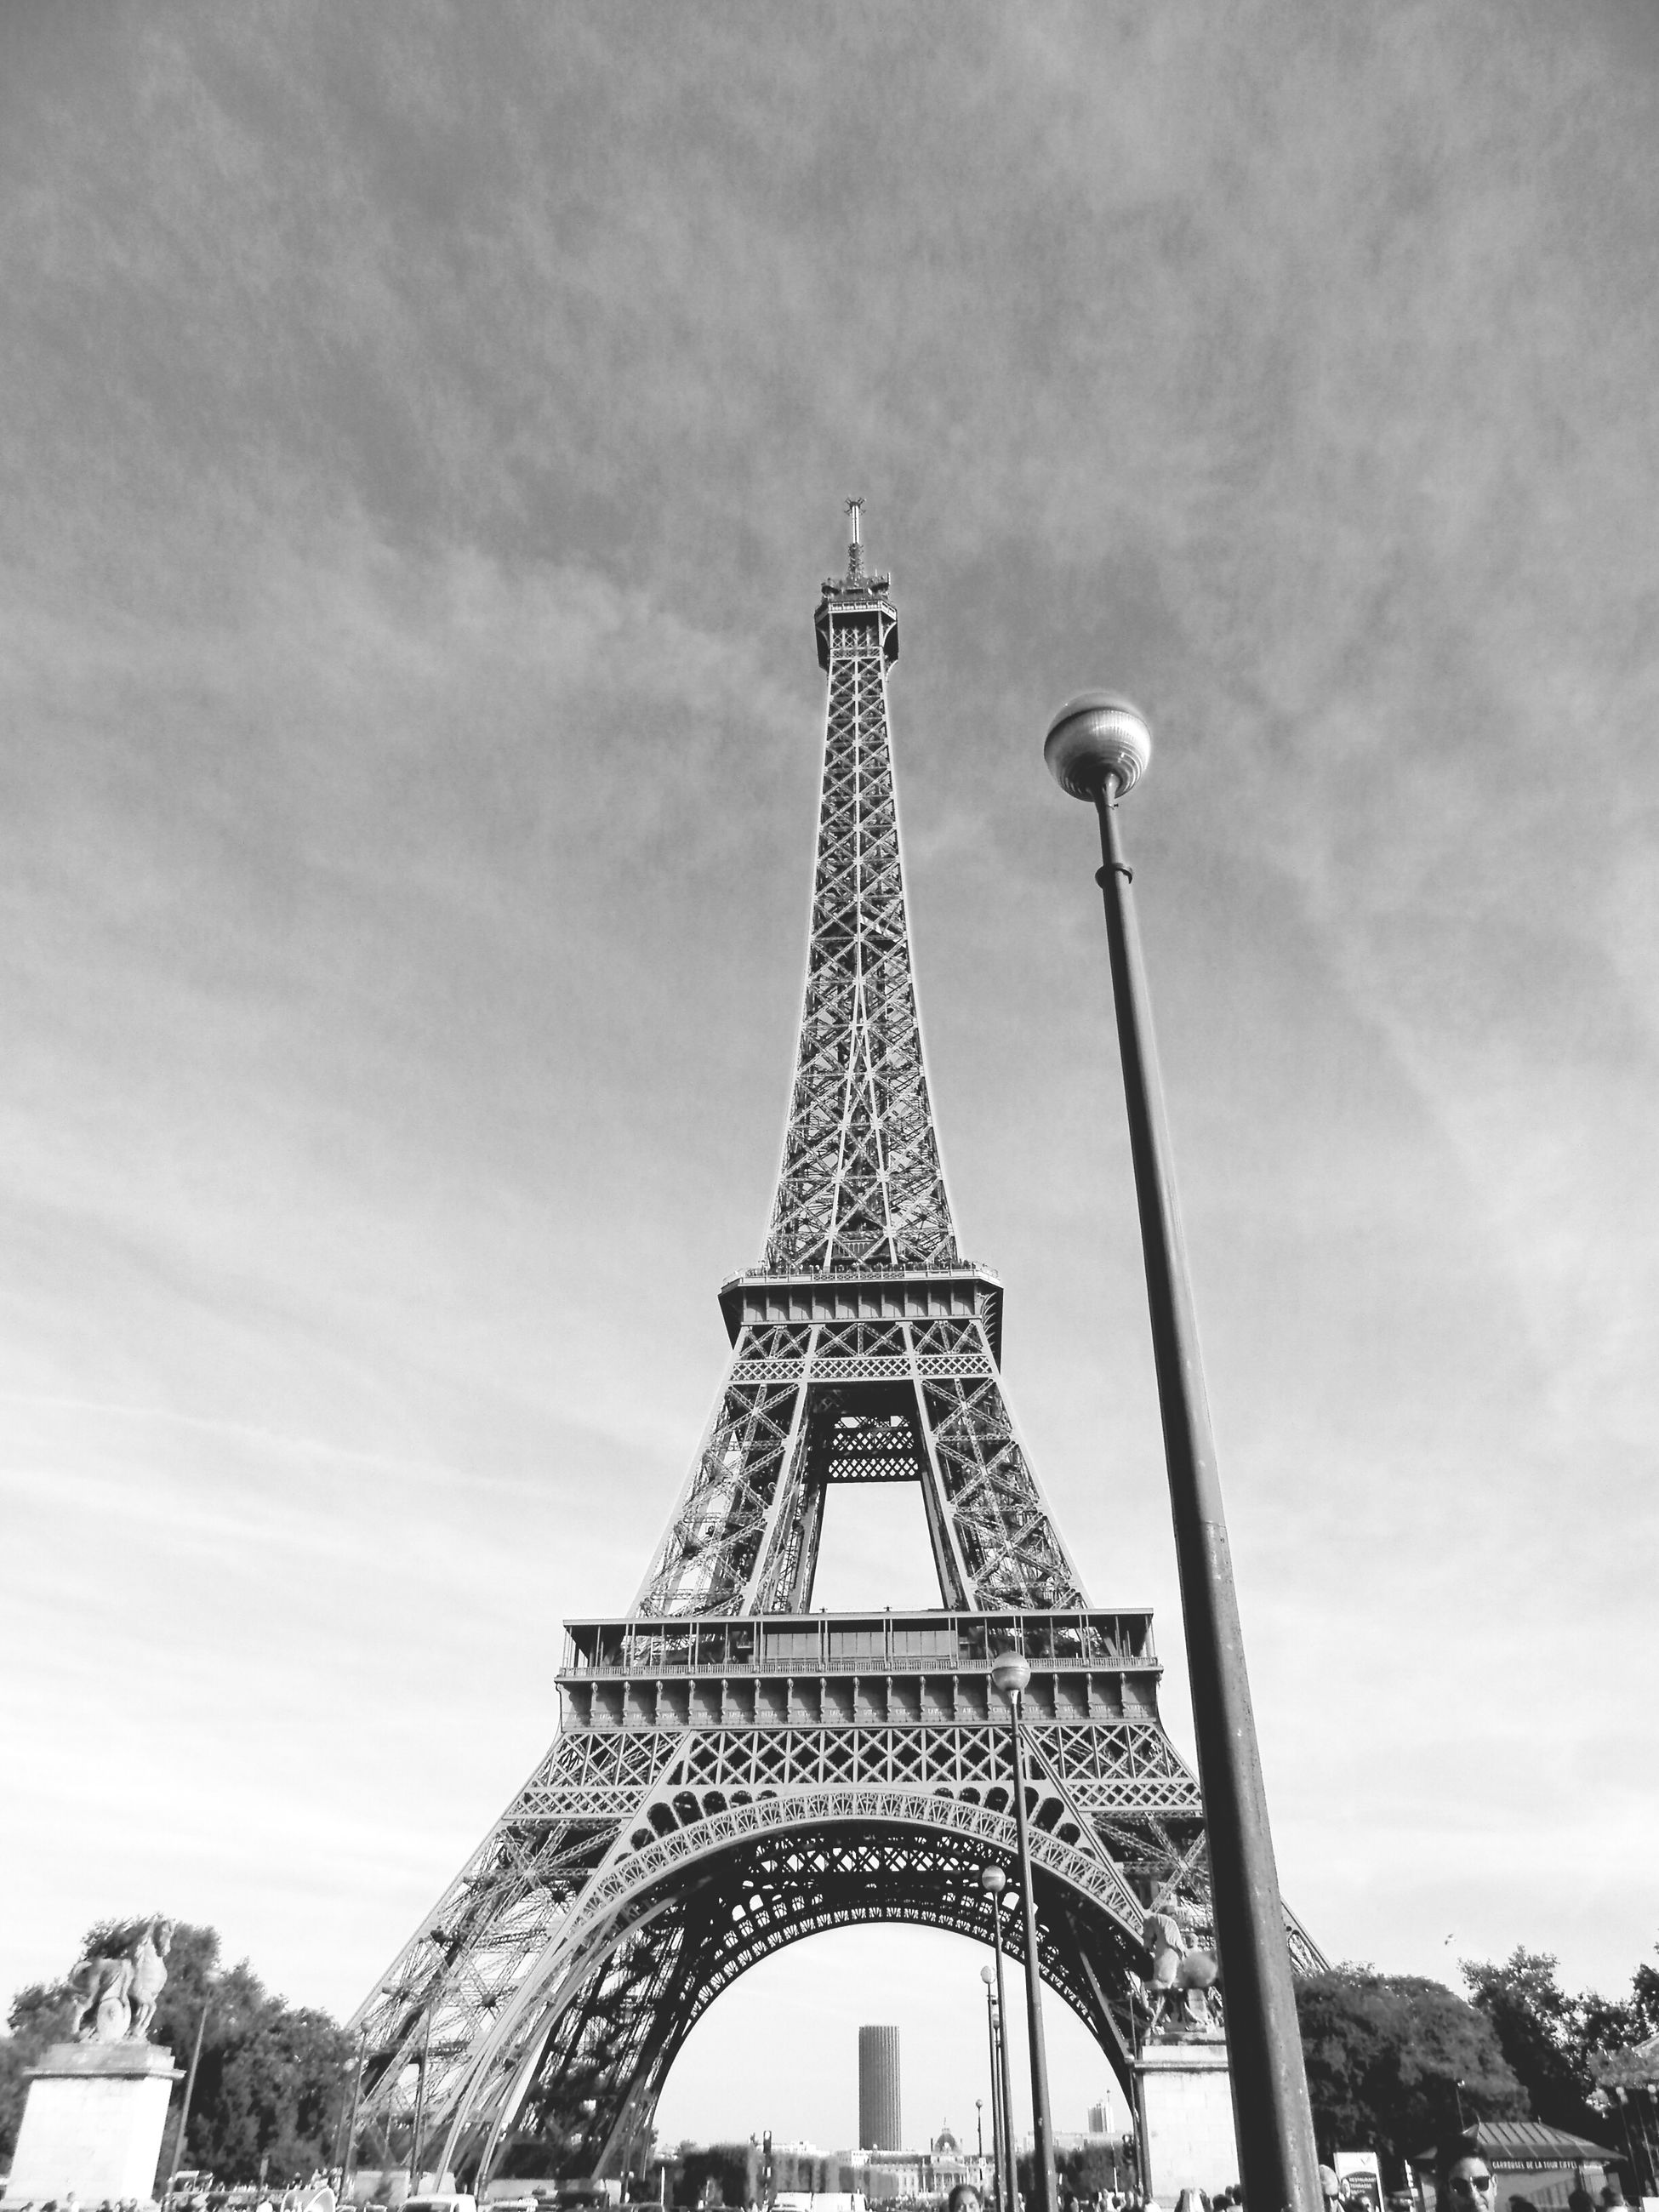 architecture, built structure, eiffel tower, famous place, international landmark, travel destinations, low angle view, culture, tourism, metal, tower, sky, capital cities, travel, history, tall - high, architectural feature, metallic, engineering, day